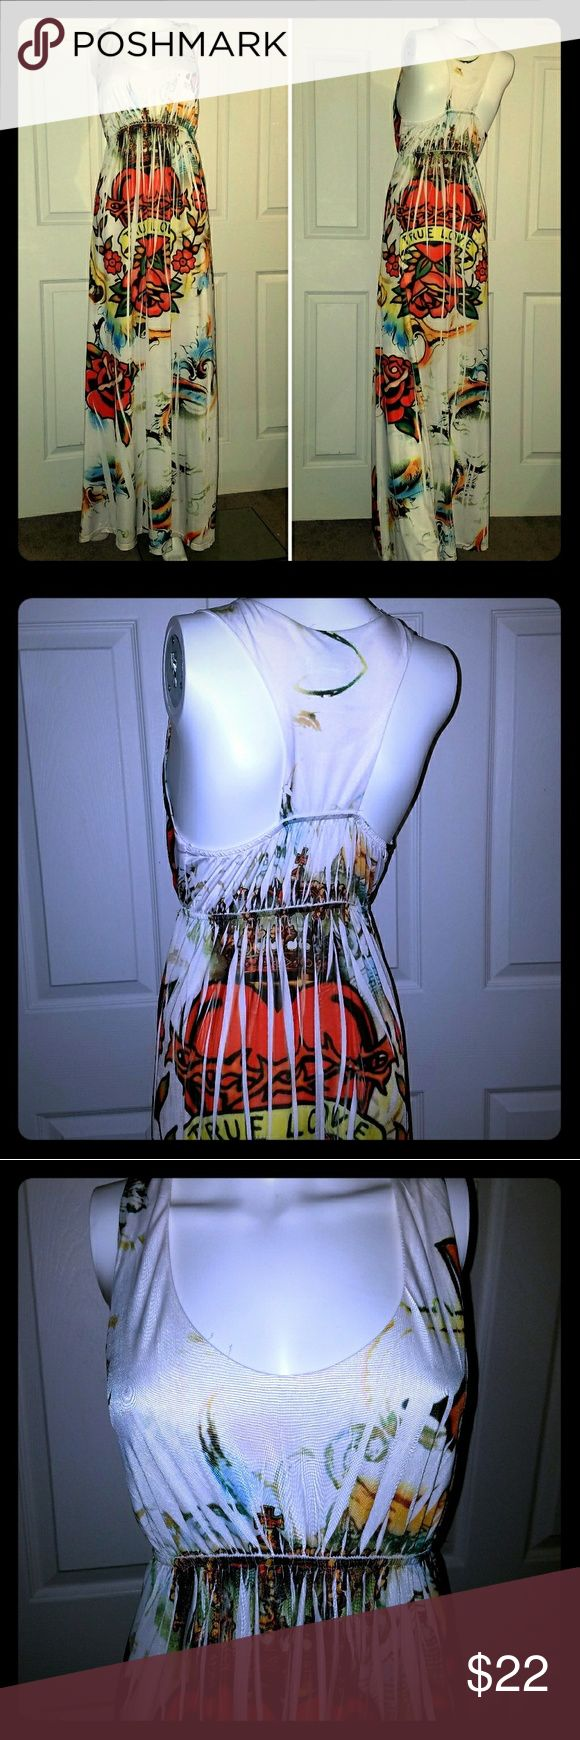 """🆕Bright Maxi Dress """"True Love"""" Cute racerback style maxi wirh elastic empire waist. Ed Hardy inspired. Fits great with a racerback bra or without. 45"""" length from empire (under boob) to bottom. This has been worn but is in great condition. Sam & Max Dresses Maxi"""